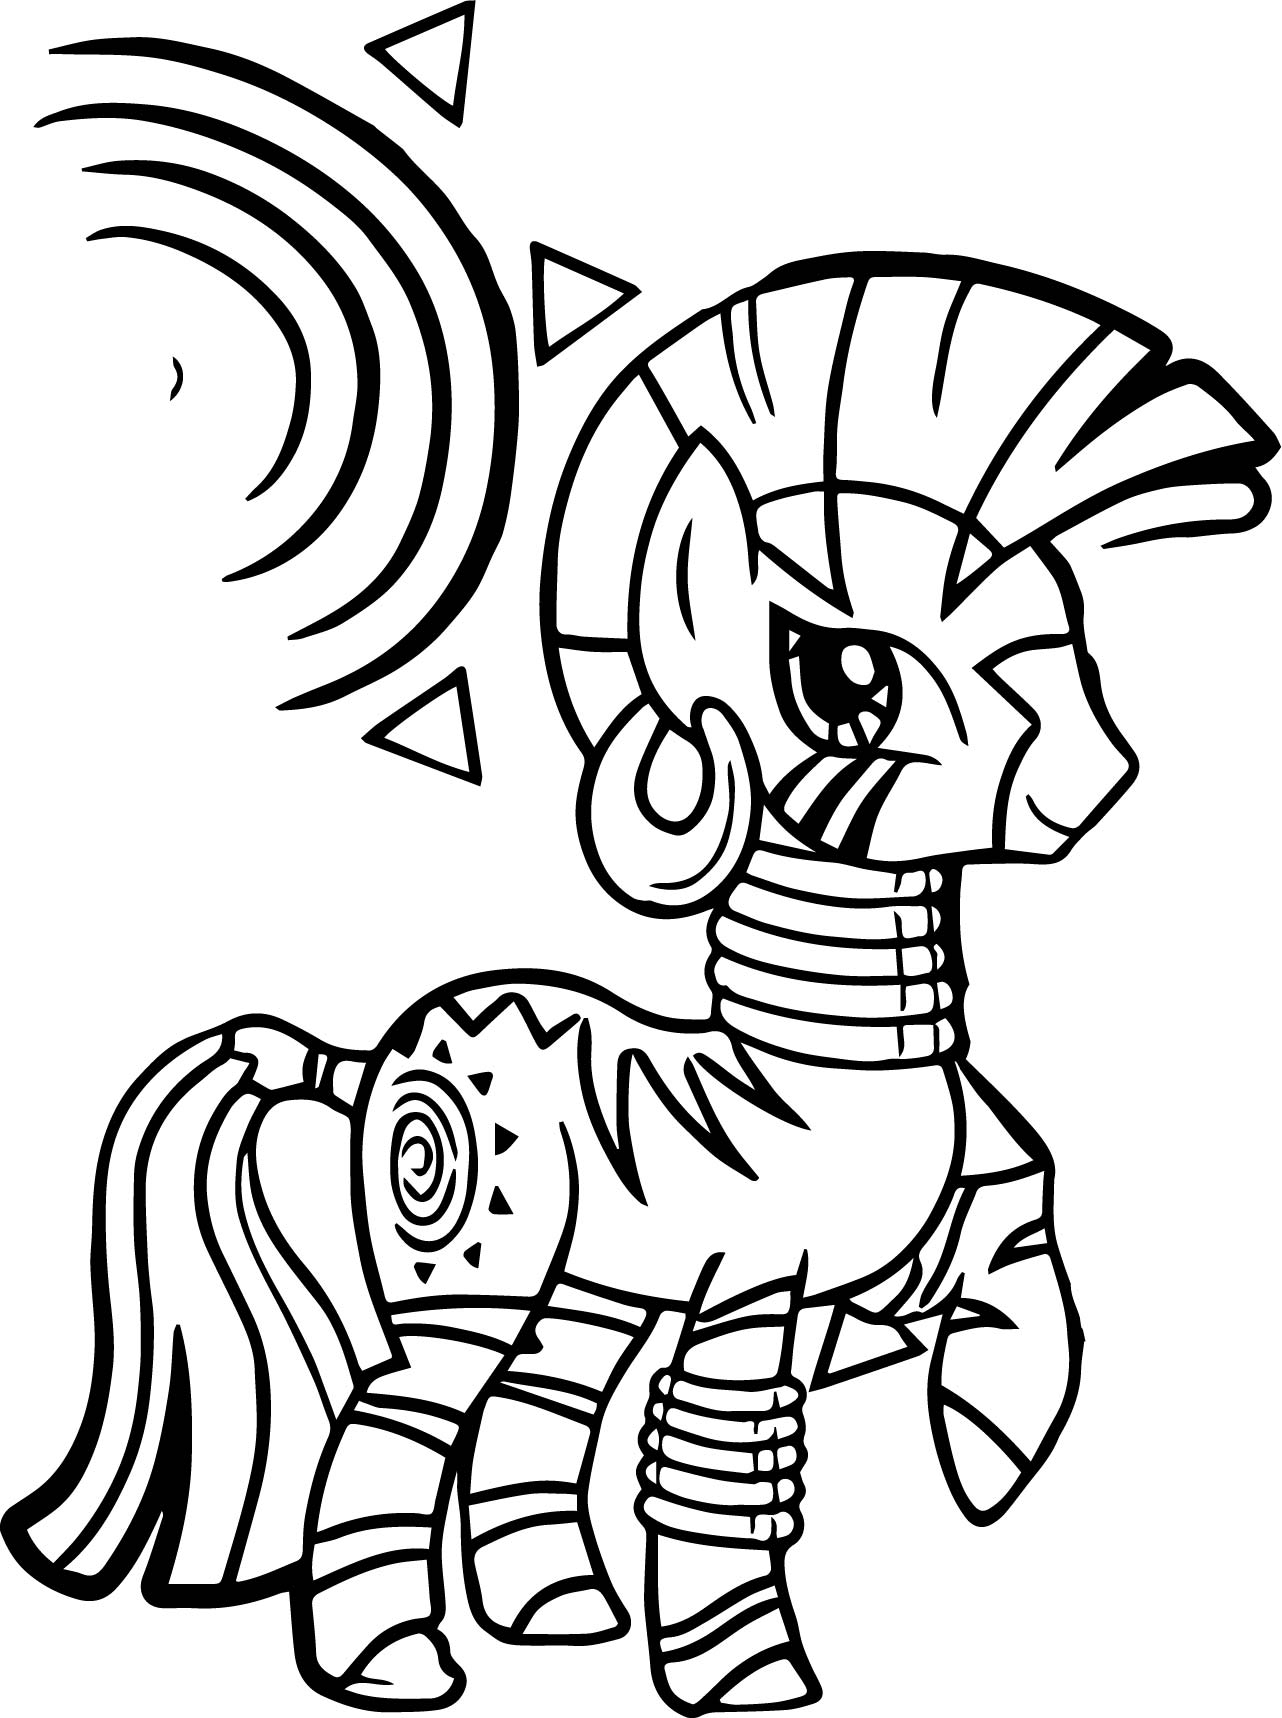 My Little Pony Zecora Coloring Pages : Zecora zakora coloring page wecoloringpage